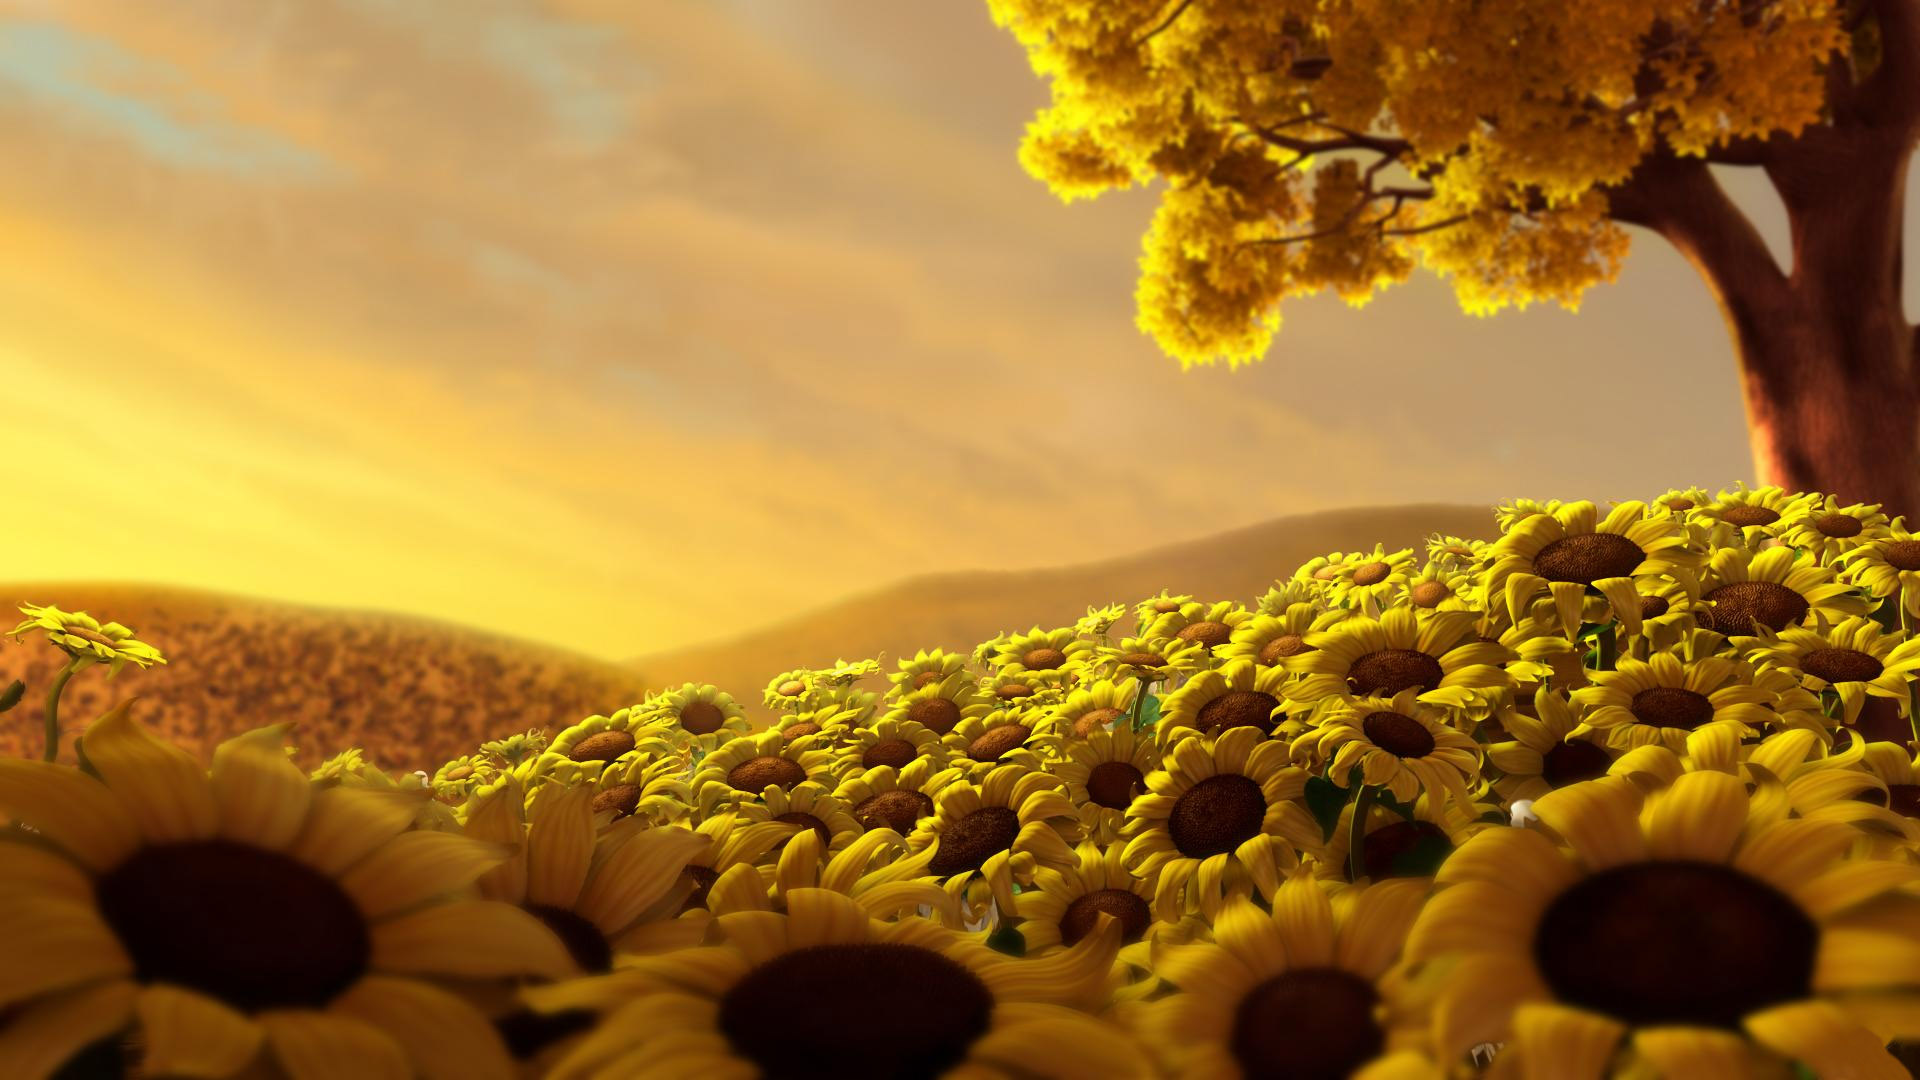 garden of sunflowers hd wallpaper | hd latest wallpapers